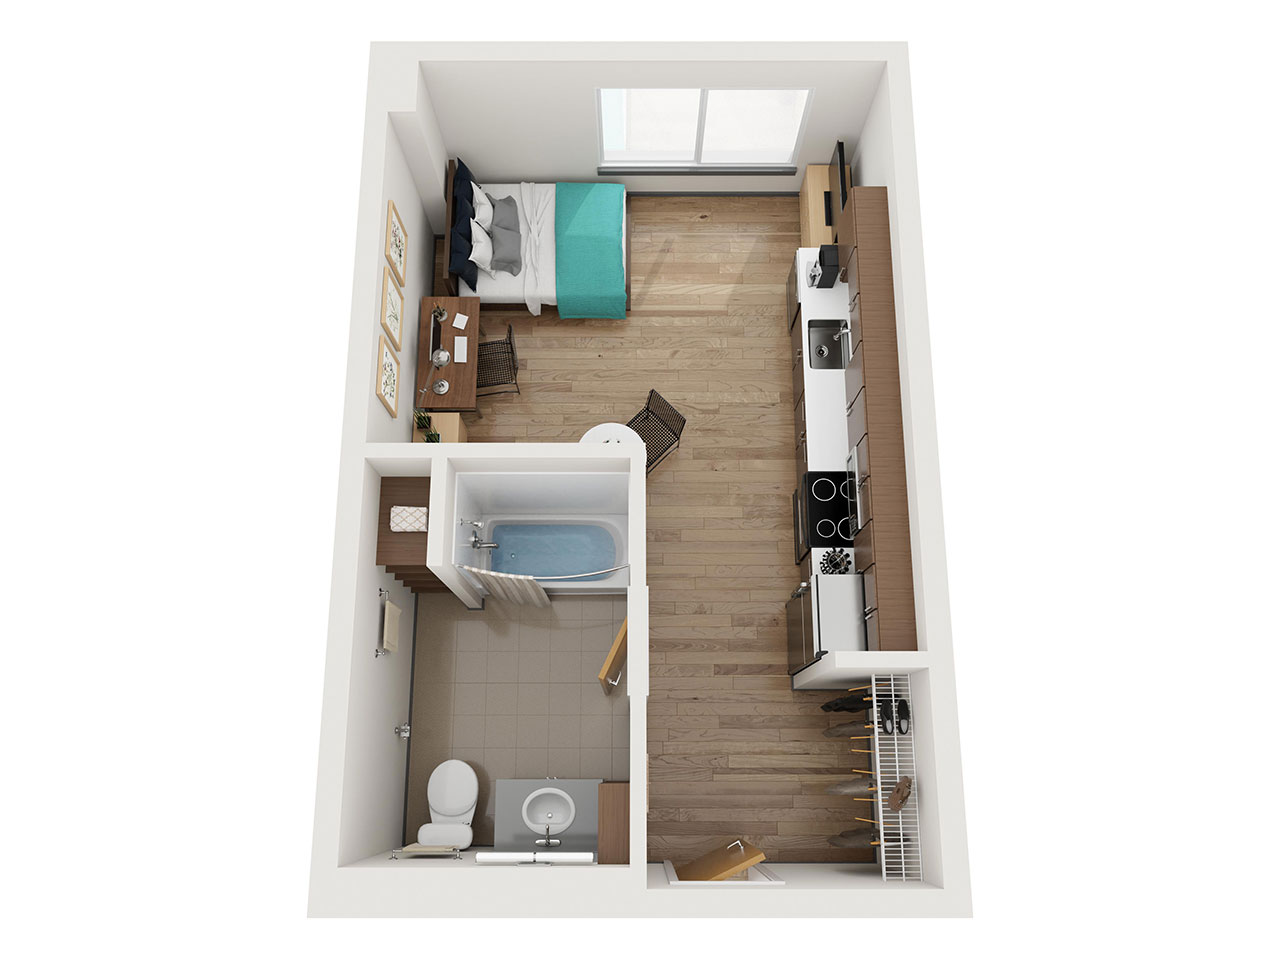 Aerial View of a Floor Plan for a Studio Apartment at Stateside